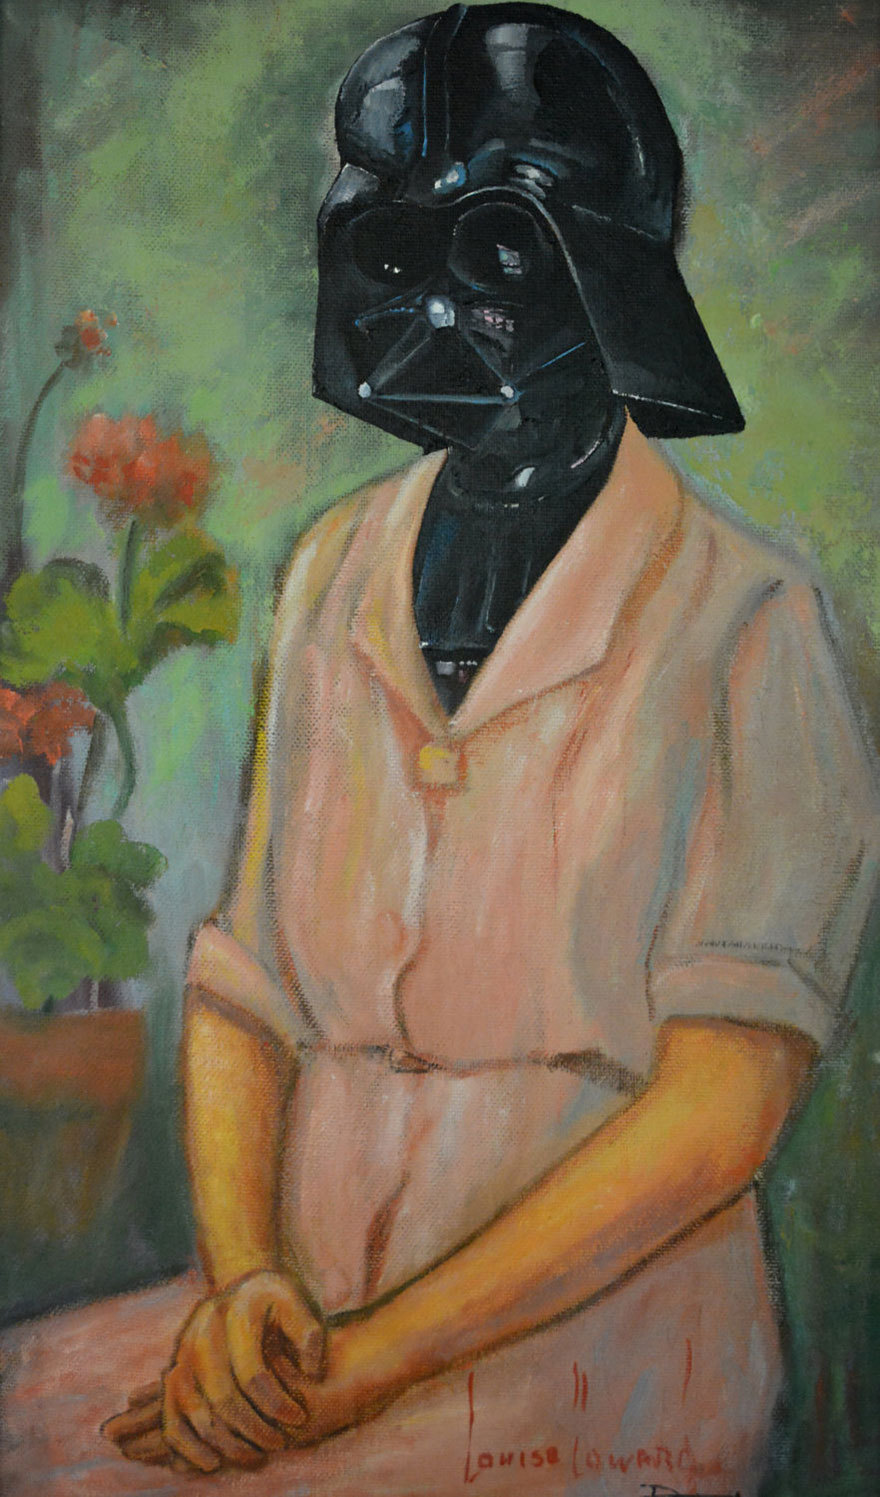 pop-culture-characters-thrift-store-paintings-dave-pollot-3